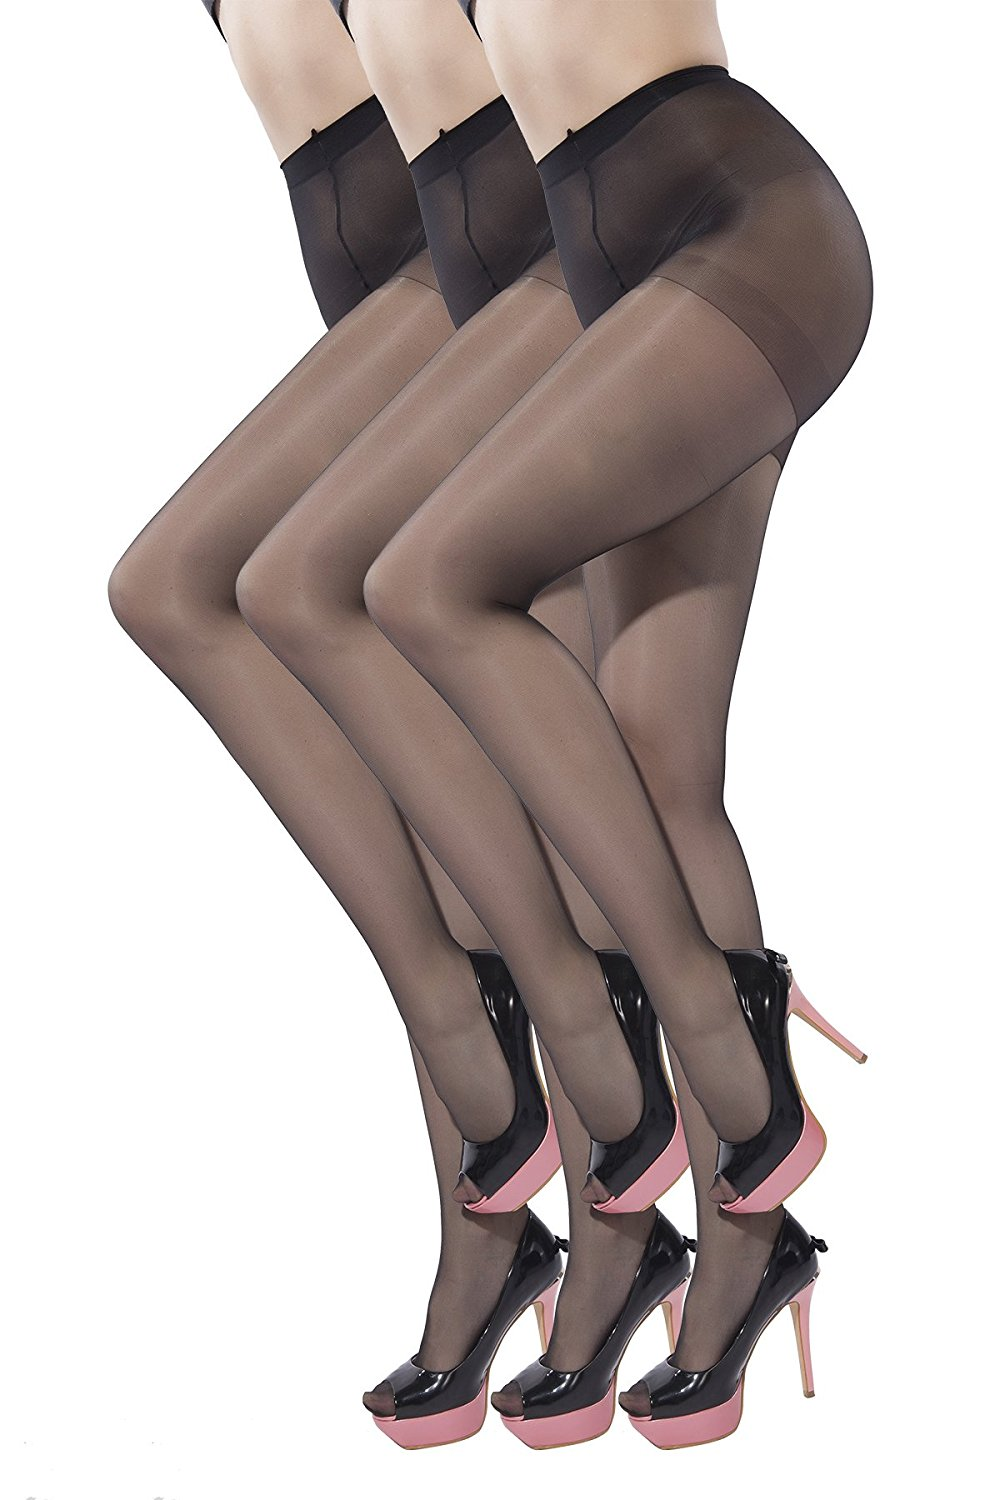 efbb02bd1 Get Quotations · Women Pantyhose Stretchy Tights Sheer to Waist 15 Denier  Sheer Toes Stockings